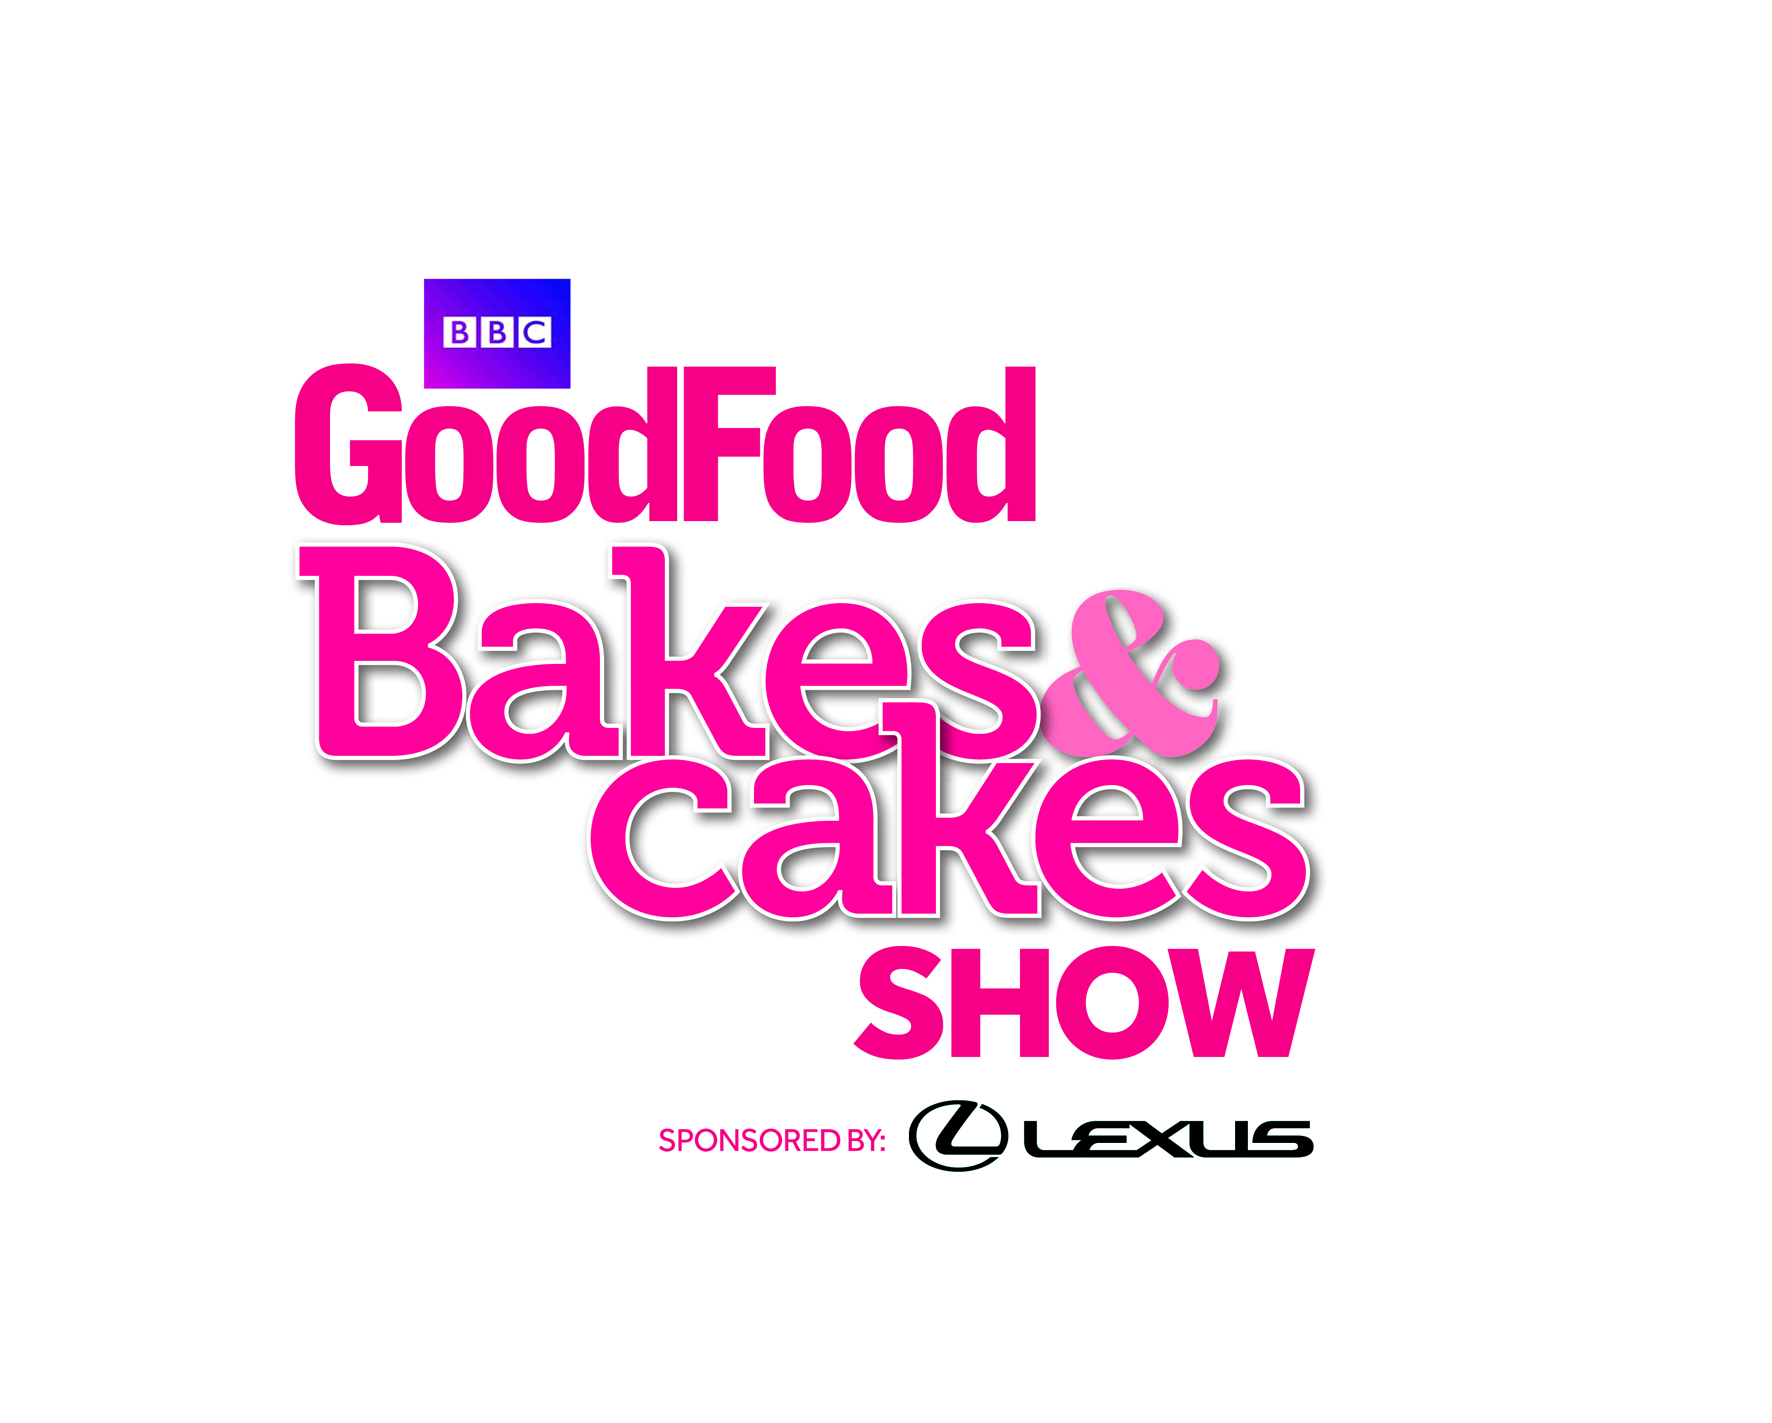 BBC Good Food Bakes & cakes